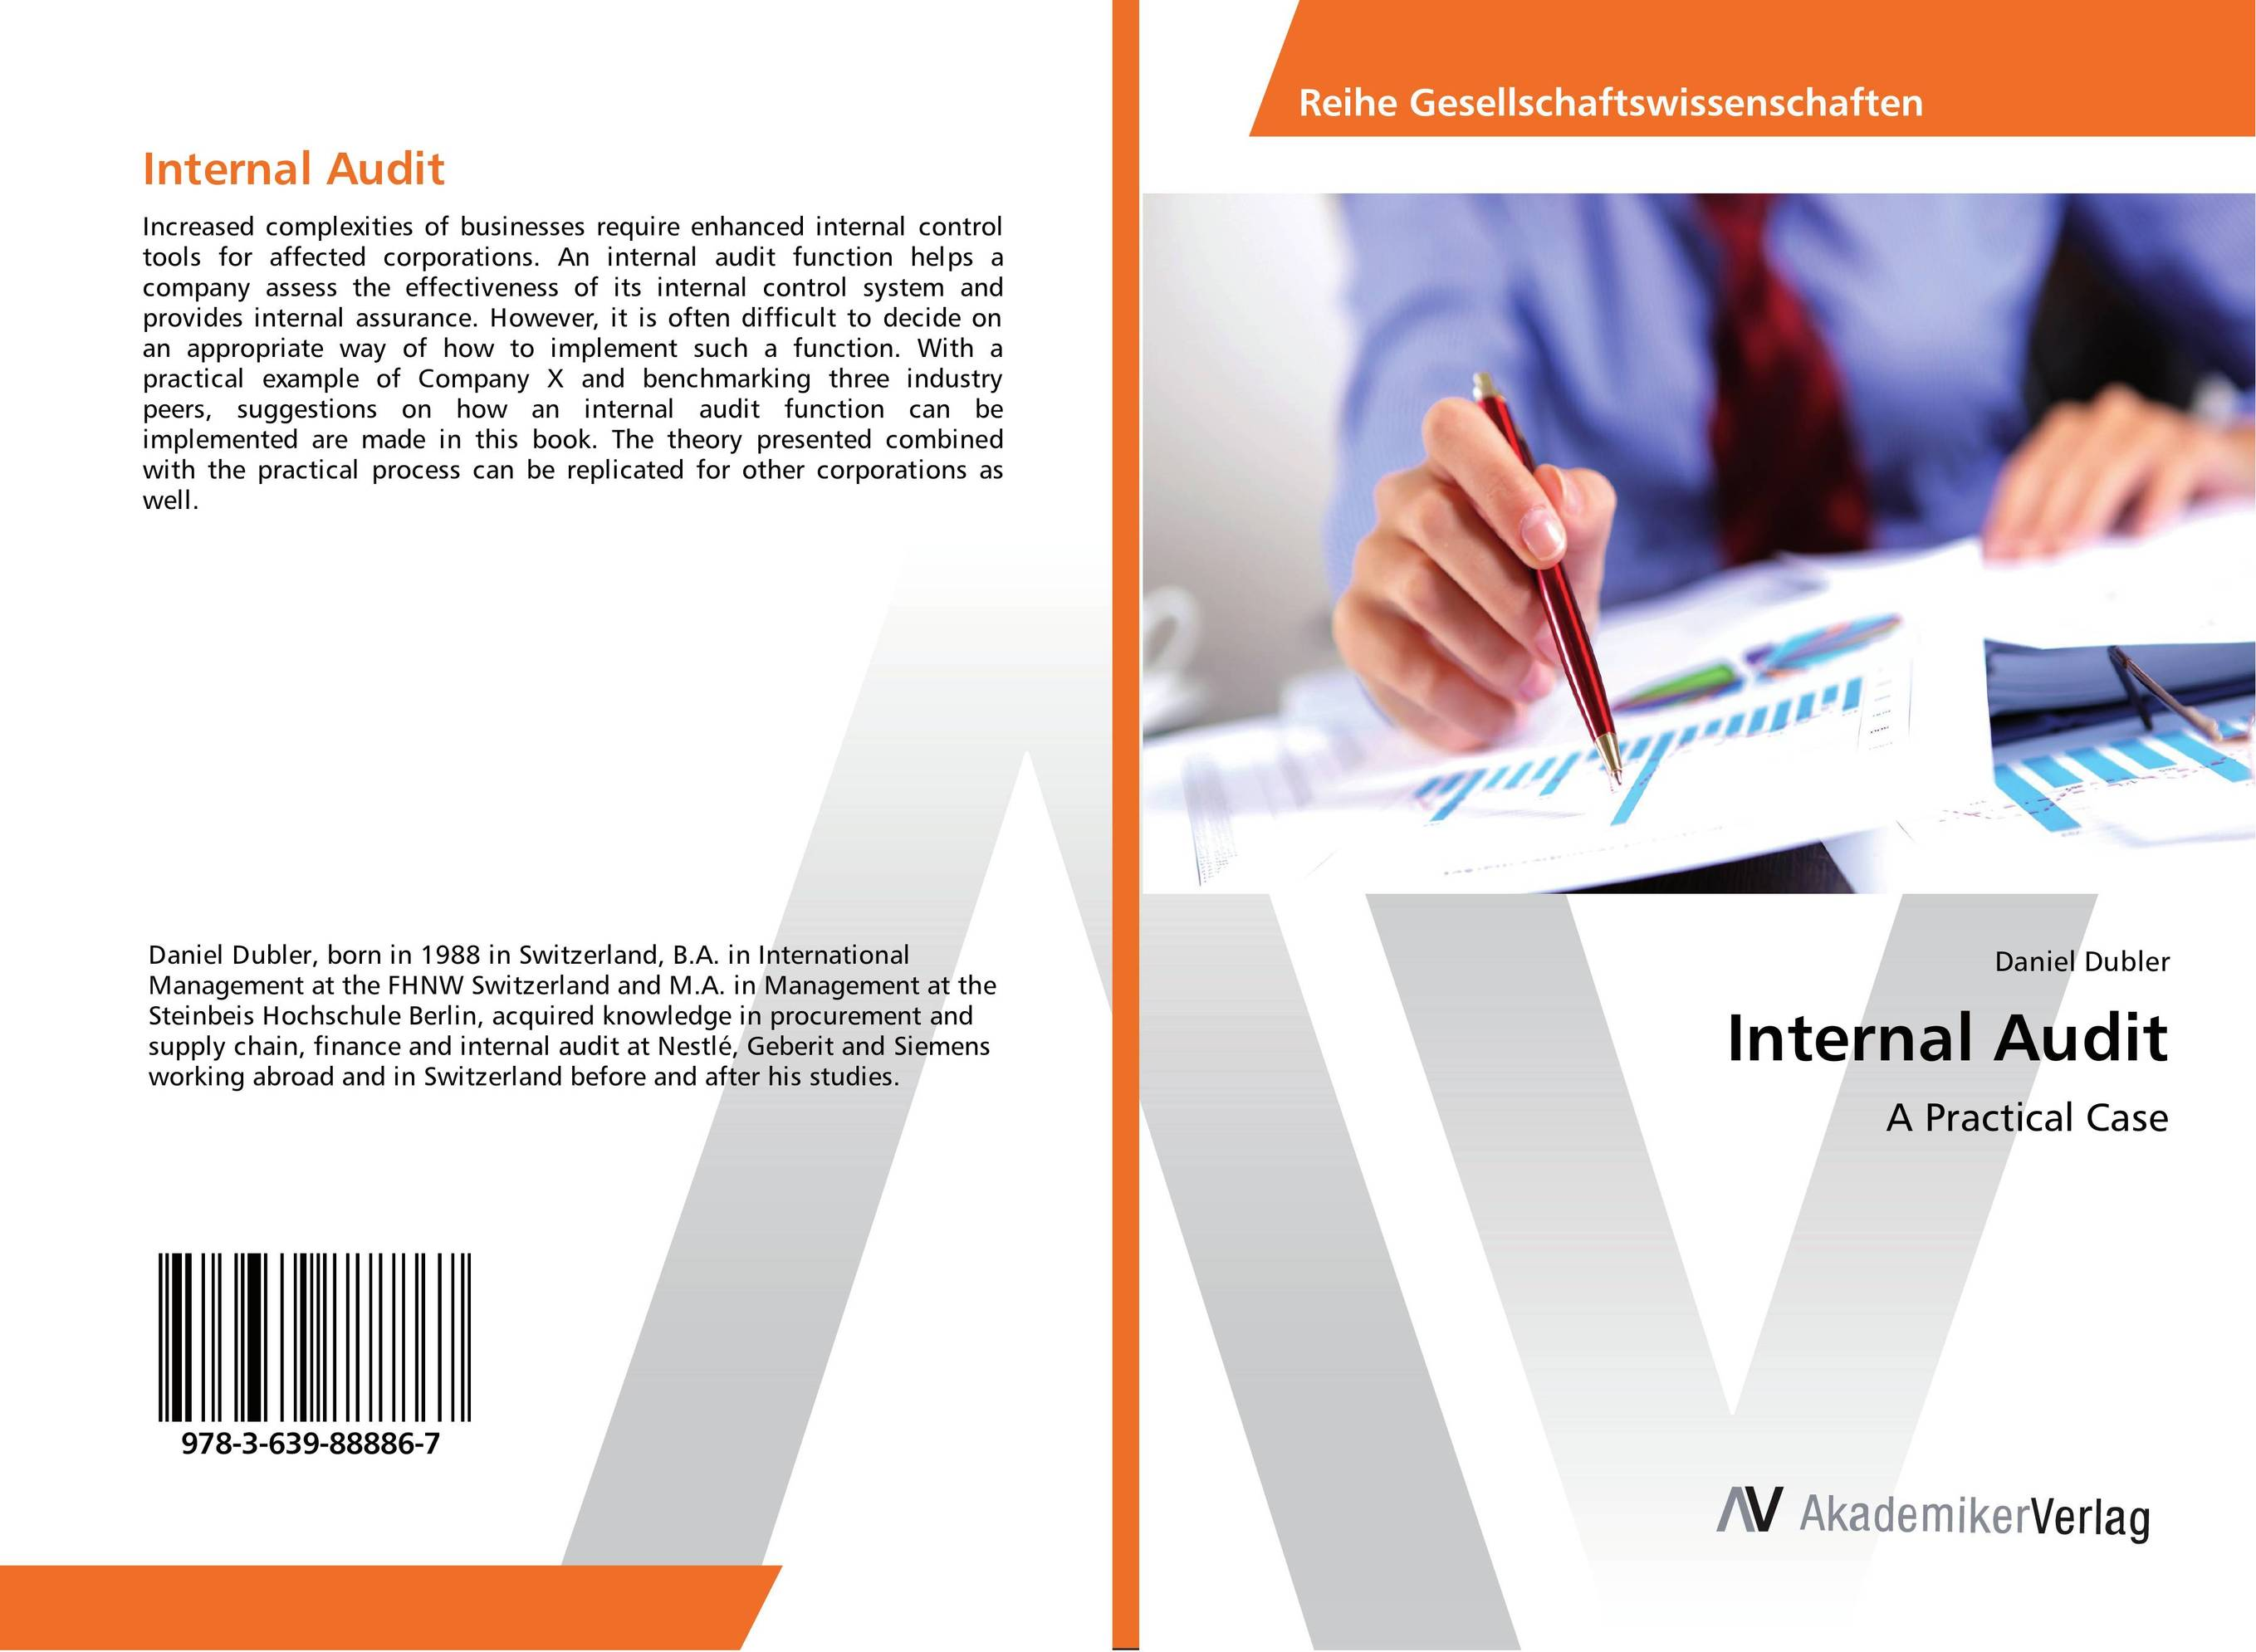 Internal Audit evaluation of the internal control practices